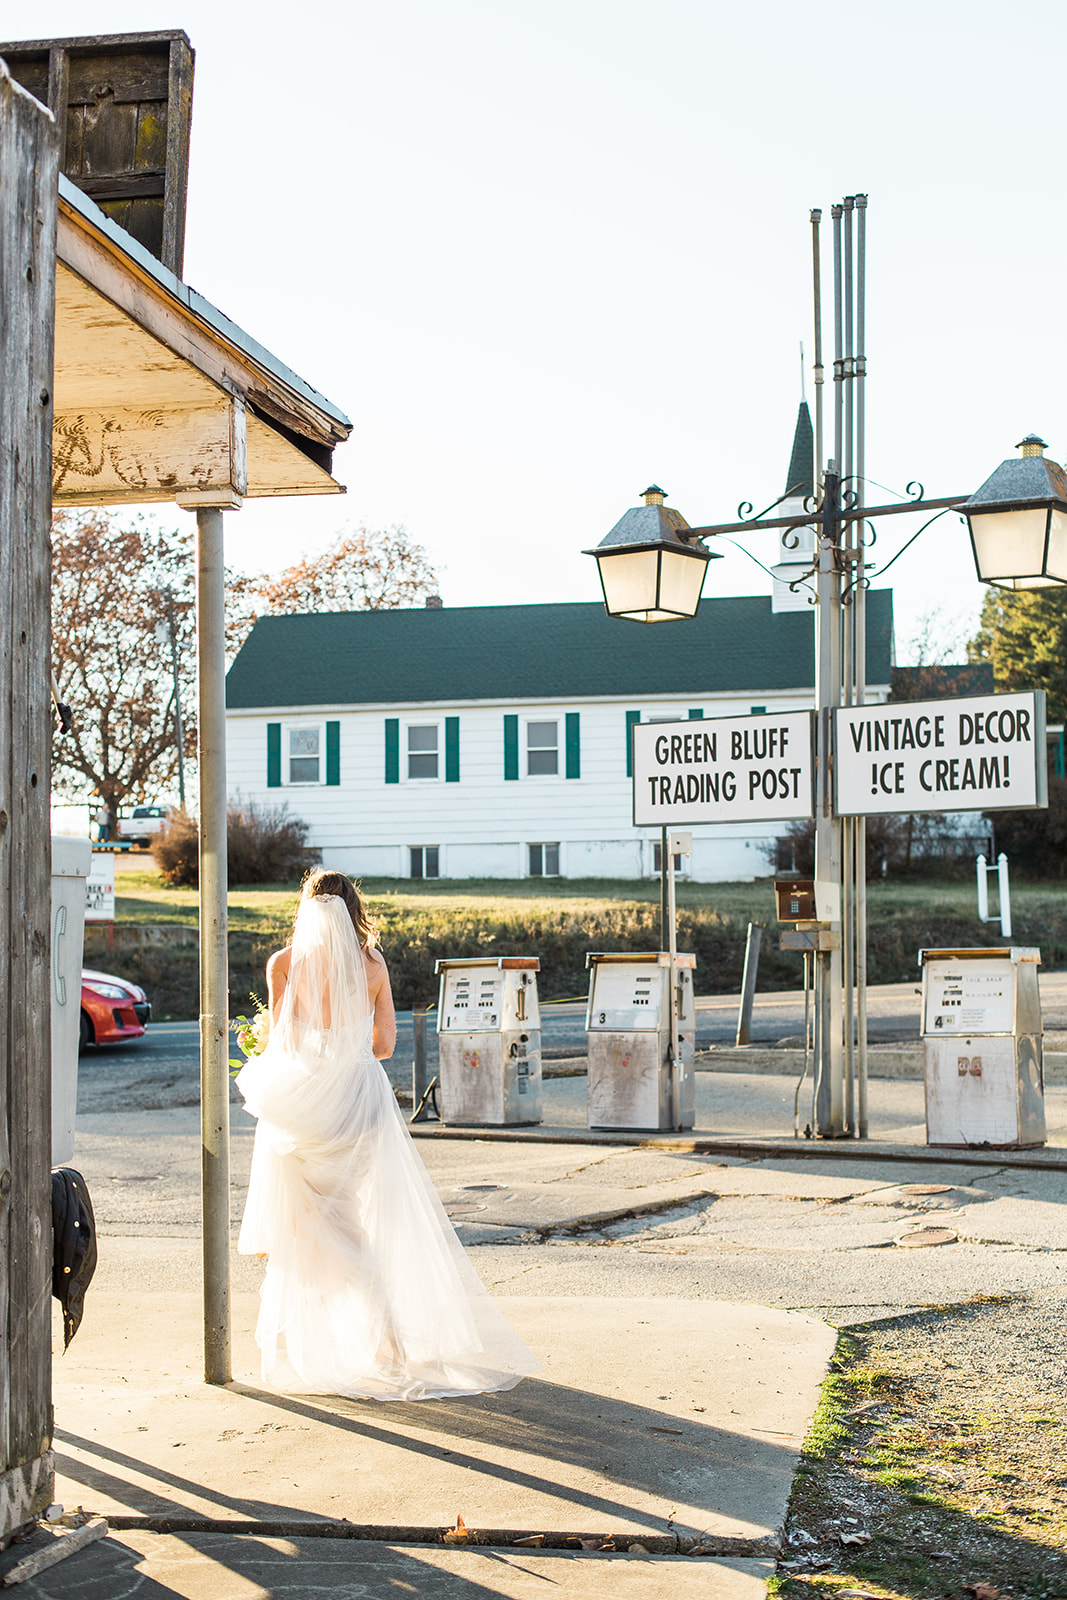 spokane wedding dress greenbluff trading post